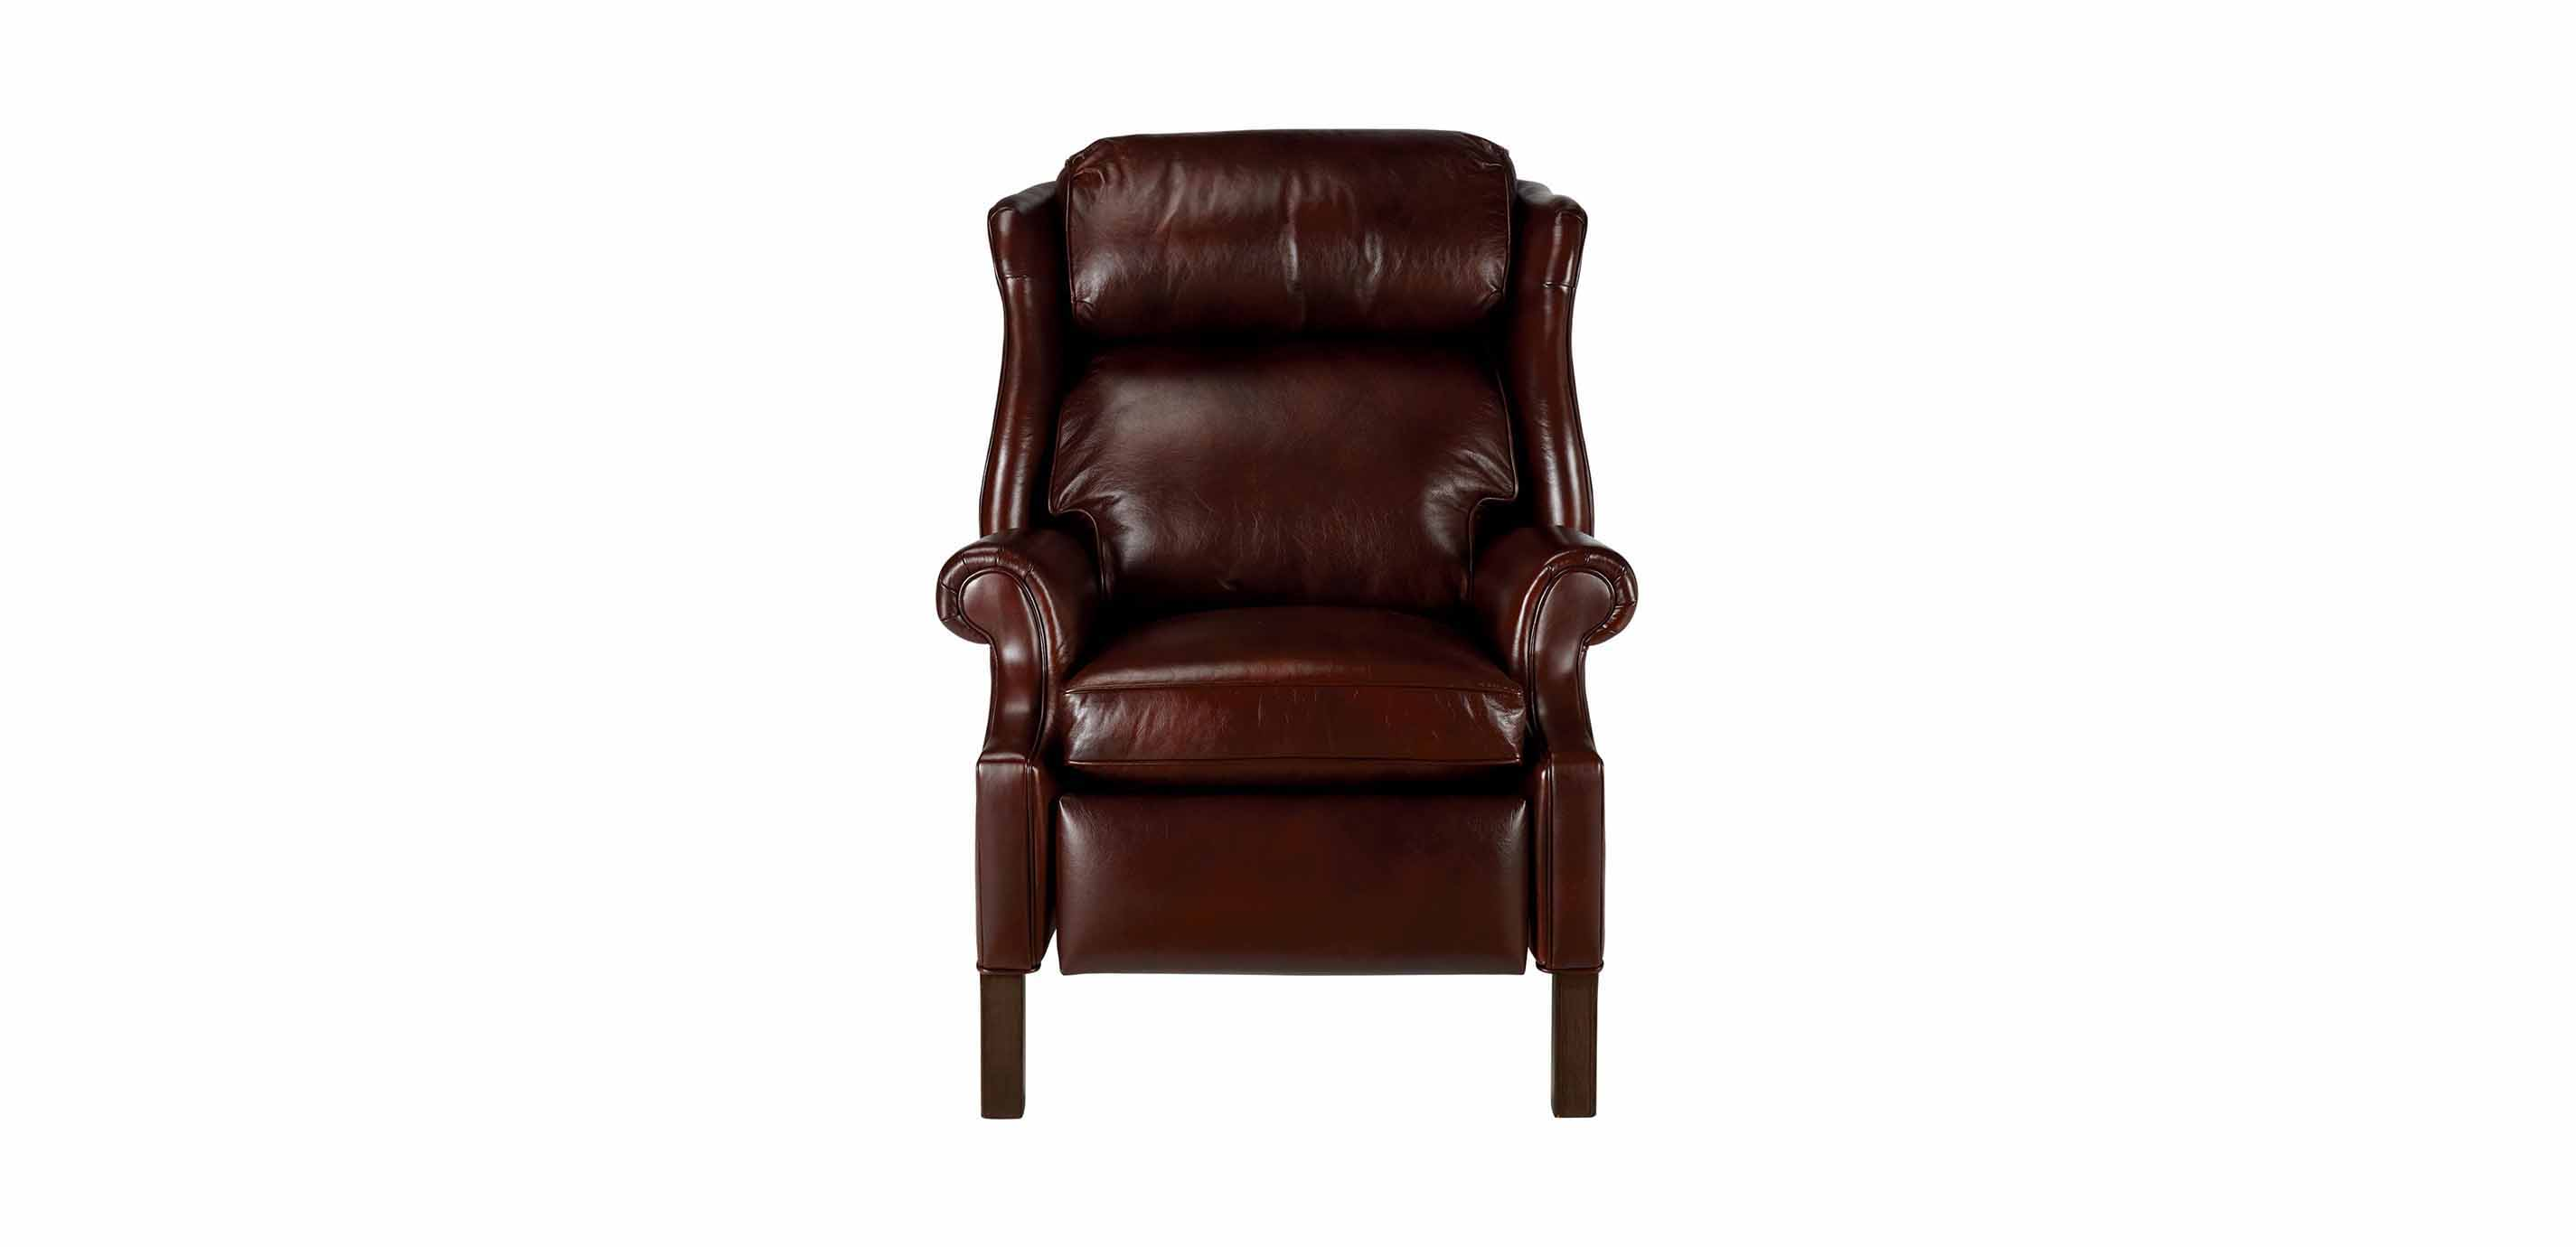 Townsend Leather Recliner Old English Chocolate